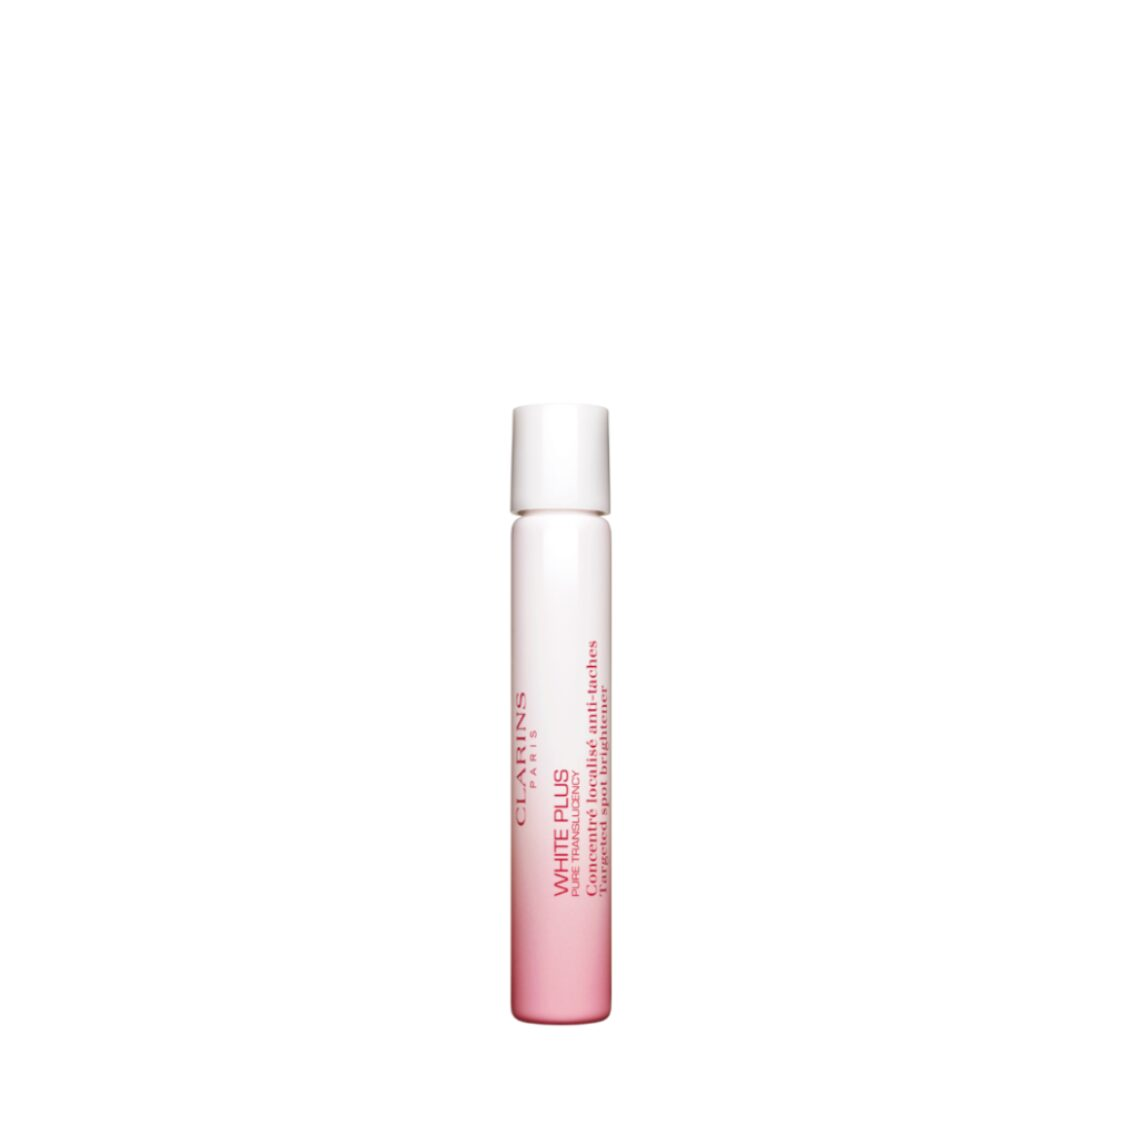 Clarins White Plus Targeted Spot Brightener 7ml